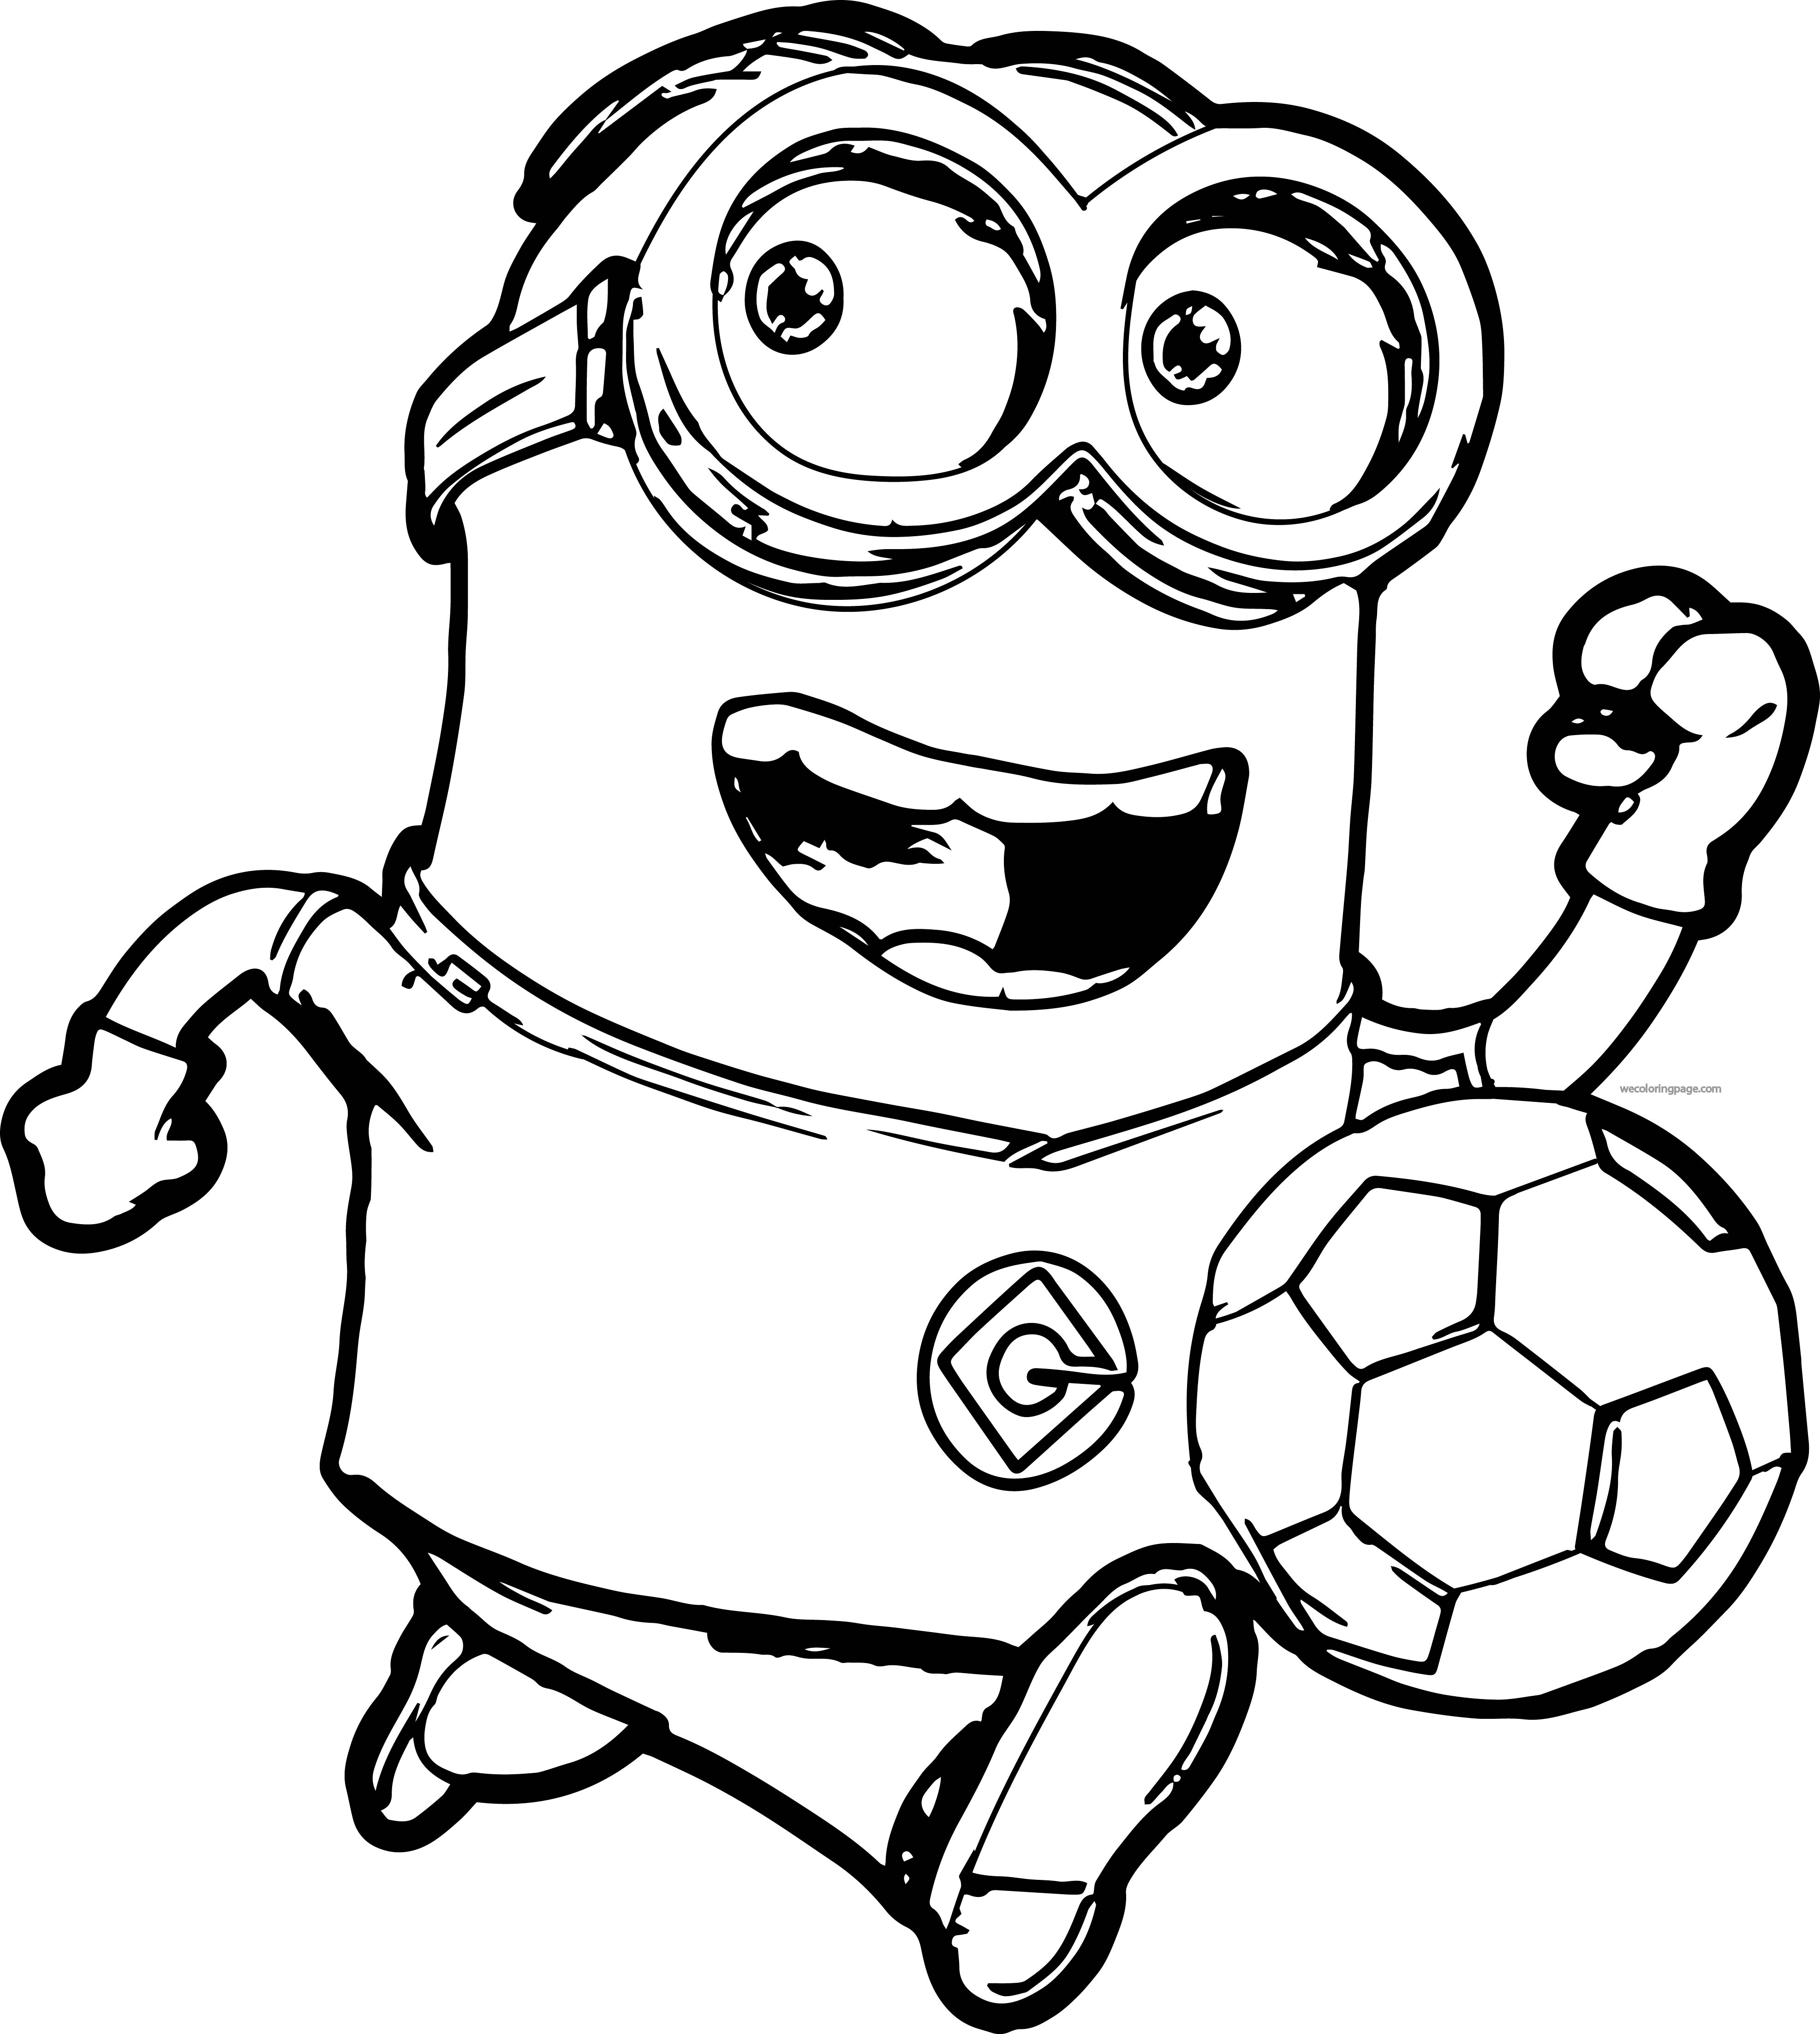 minion colouring page minion coloring pages best coloring pages for kids page colouring minion